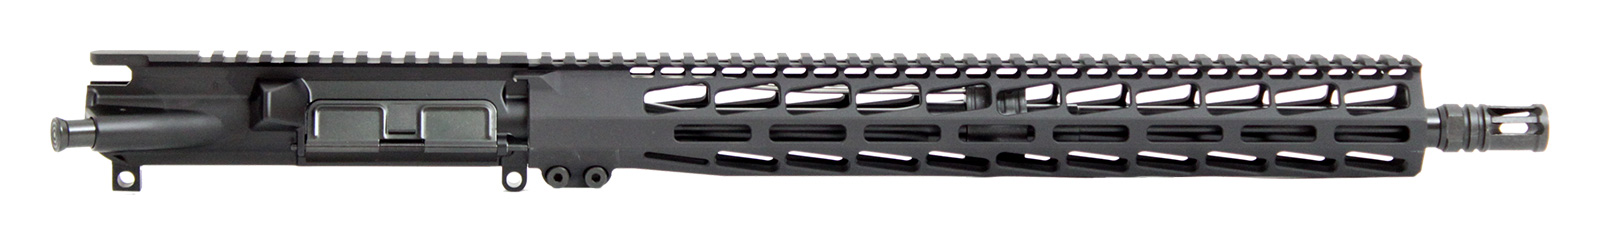 ar15-upper-assembly-16-inch-300aac-18-160037